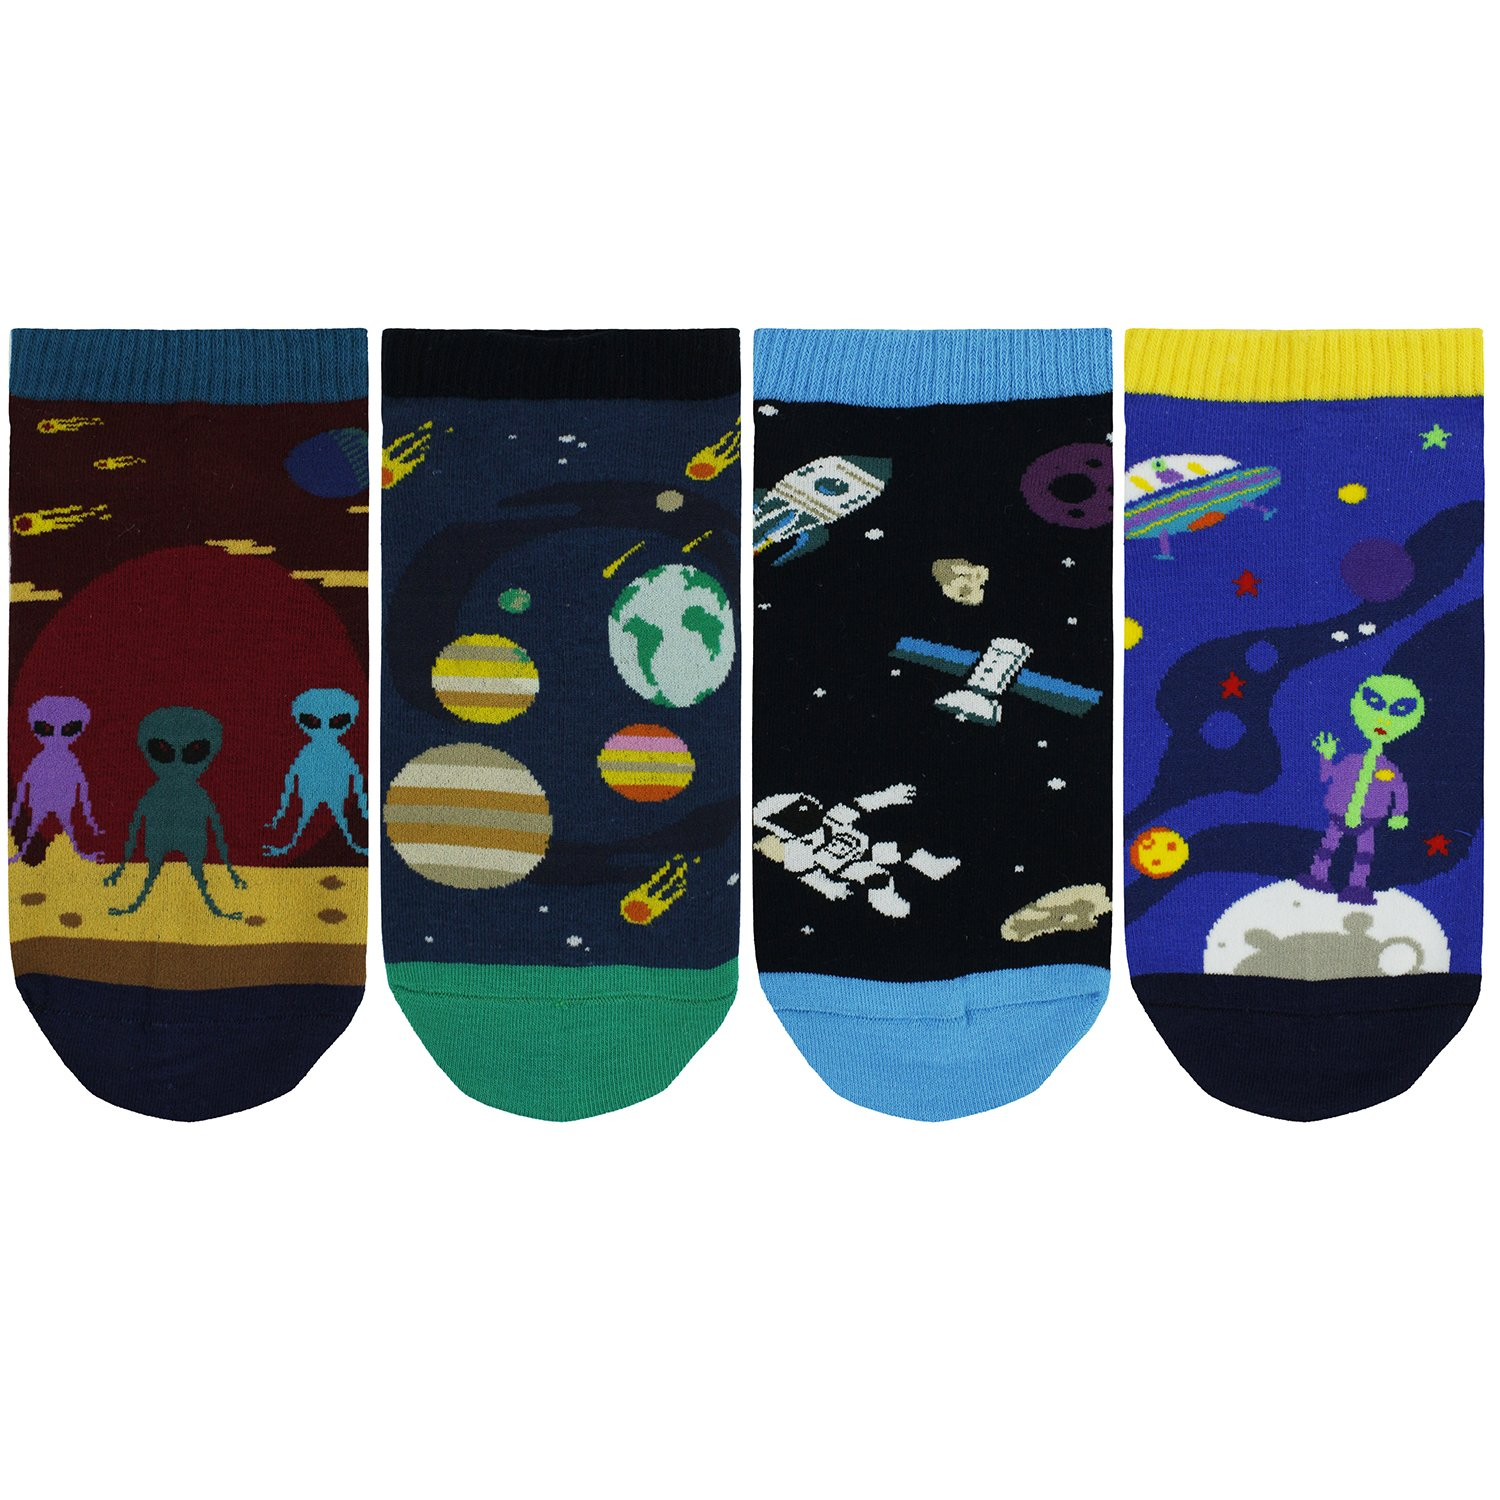 Happypop Mens Funny Ankle Socks Novelty Crazy Cotton Socks Cool Space Socks for Men